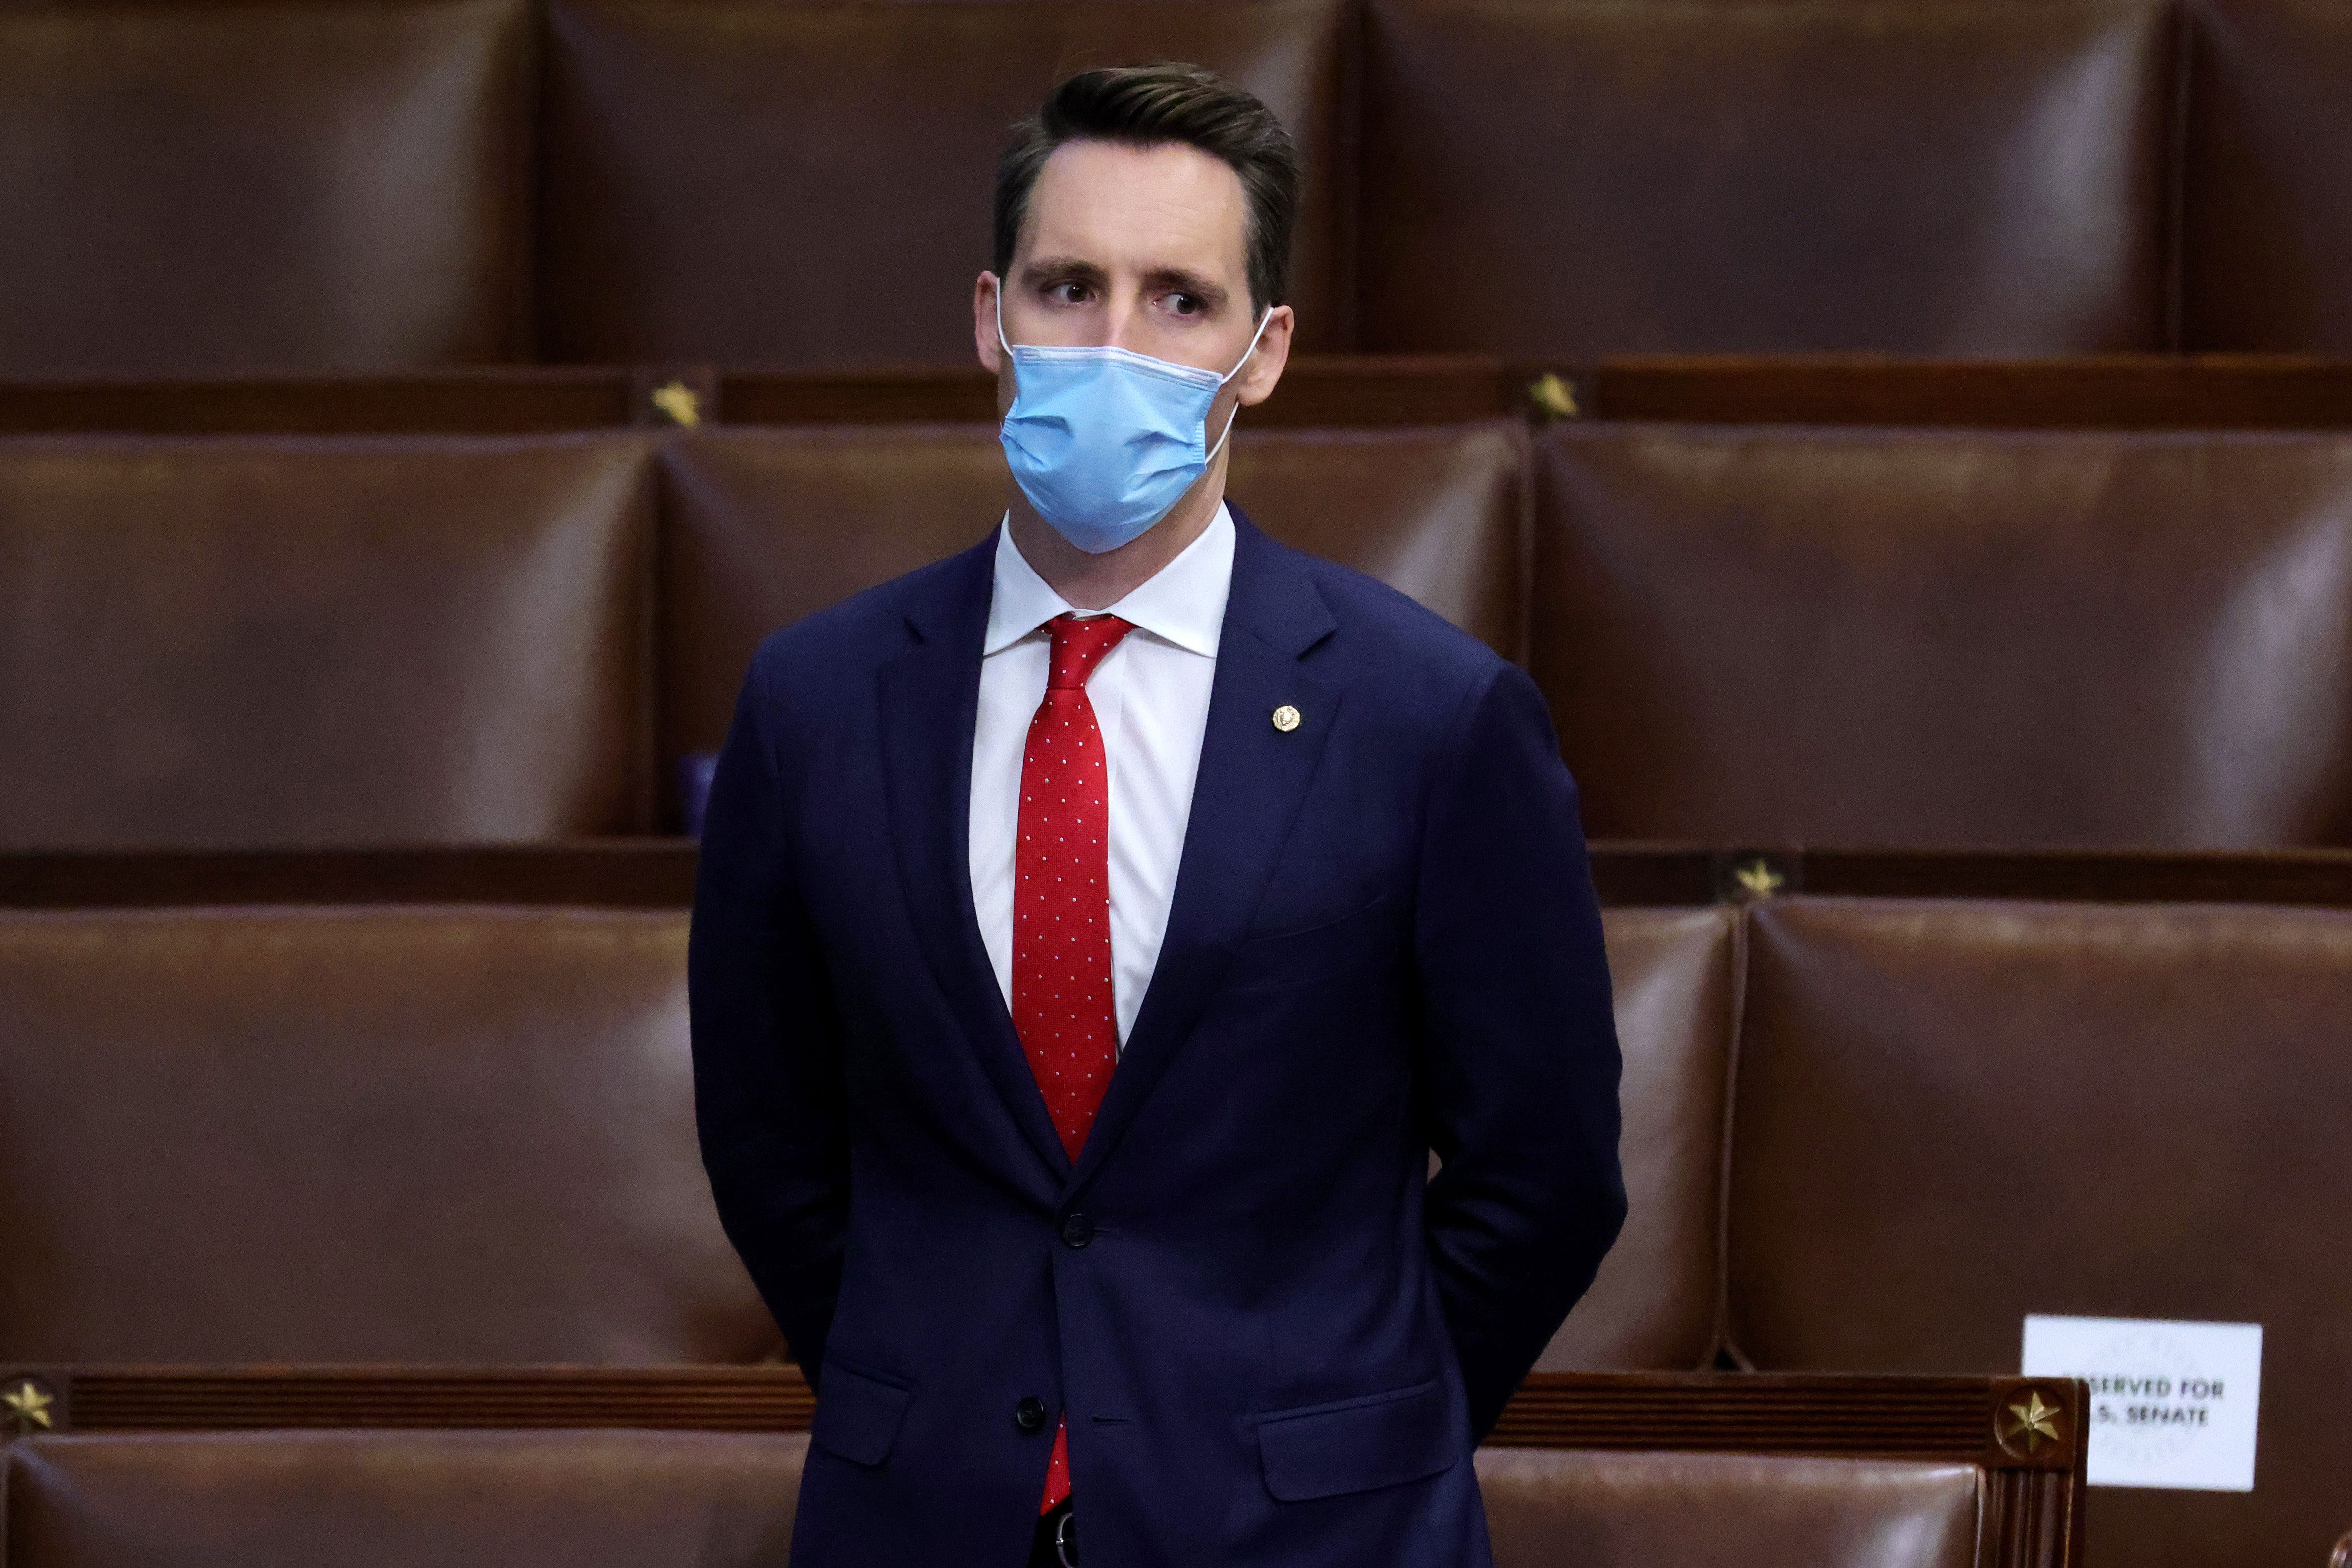 Missouri Sen. Josh Hawley stands in the House Chamber of the Capitol in Washington, DC, on January 6.